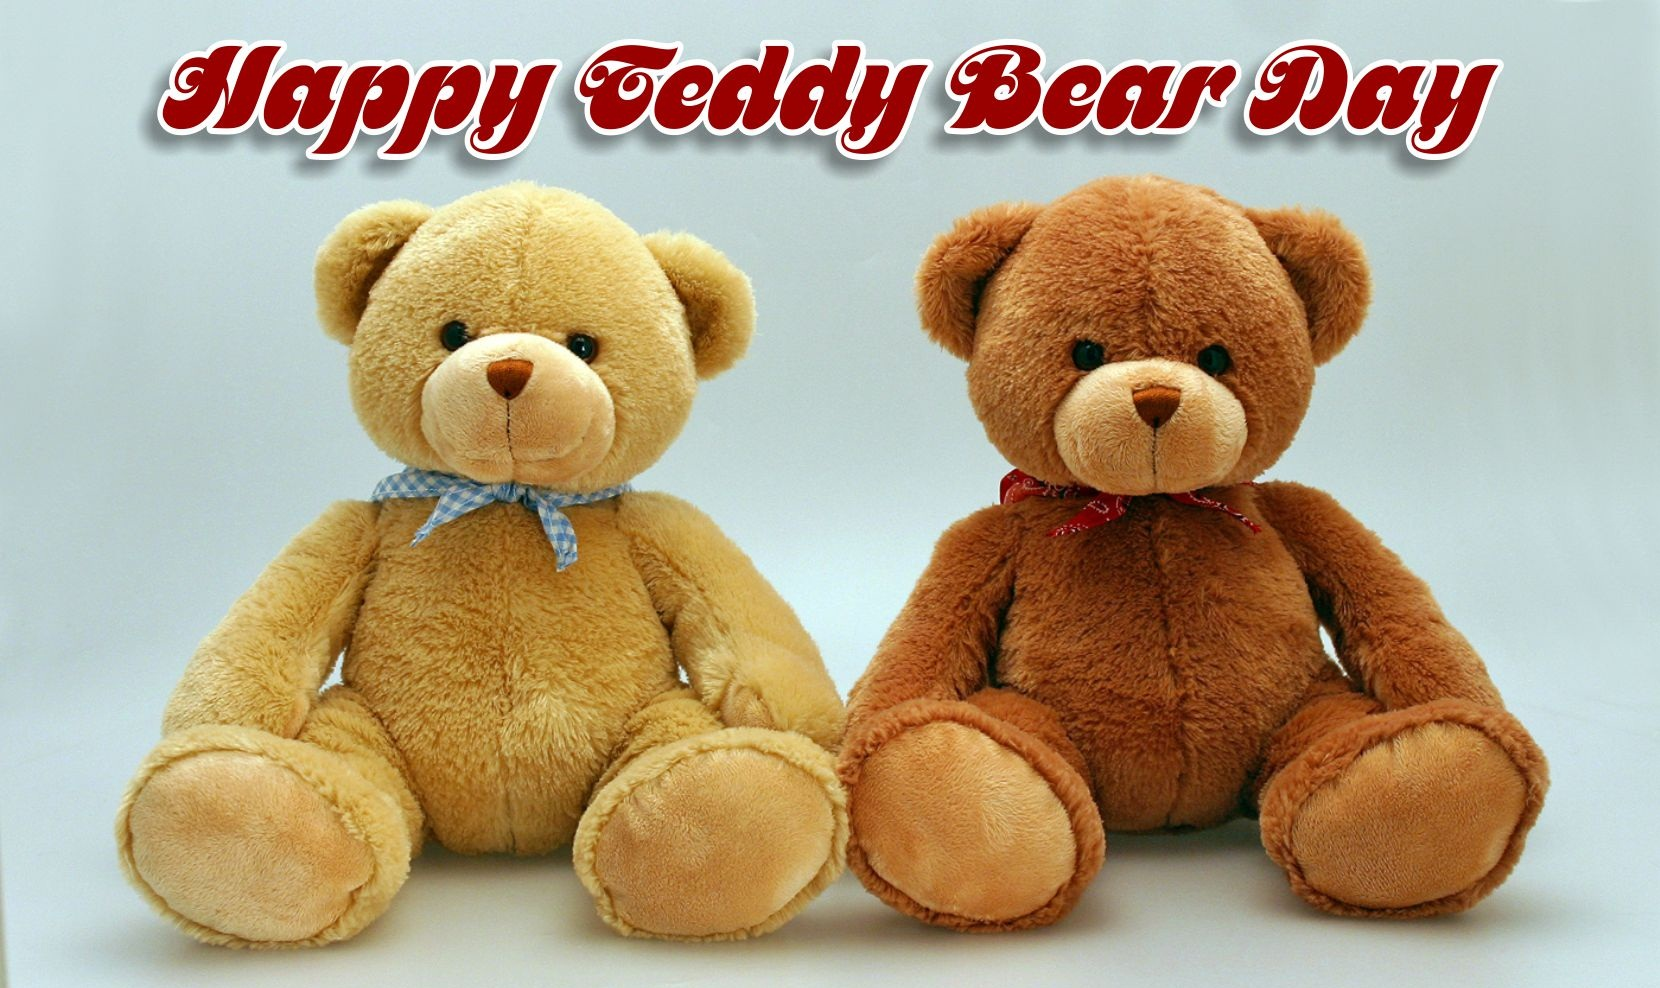 Two-teddy-for-teddy-day-wishes